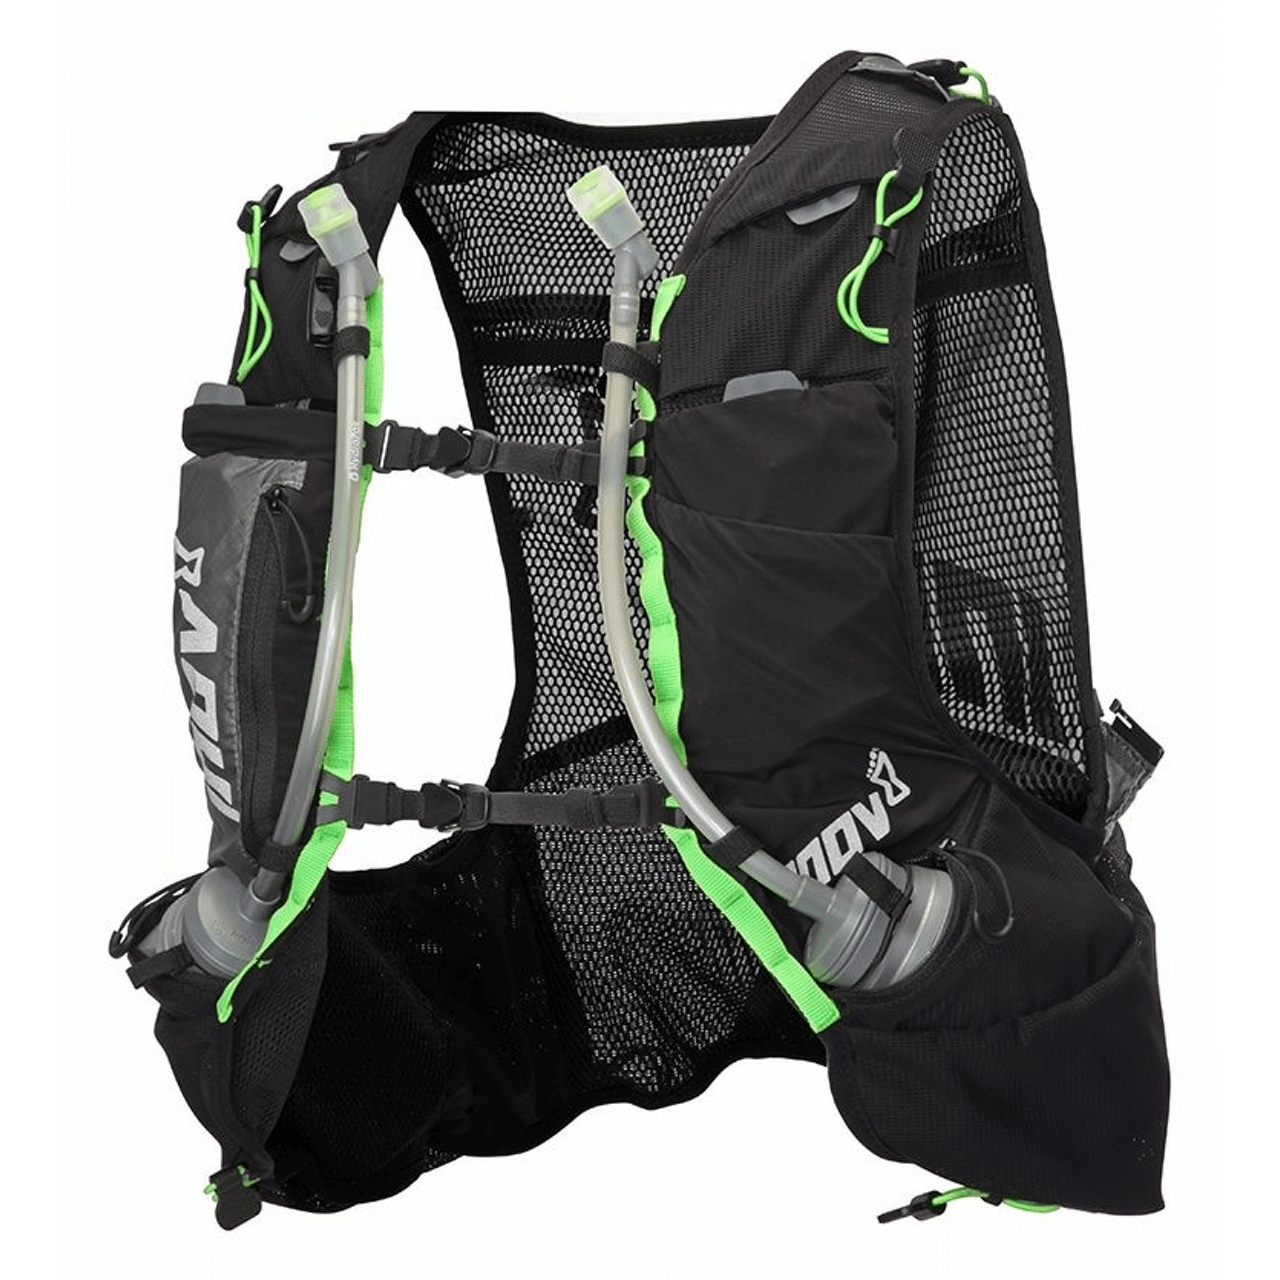 Race Ultra Pro 2-in-1 Vest